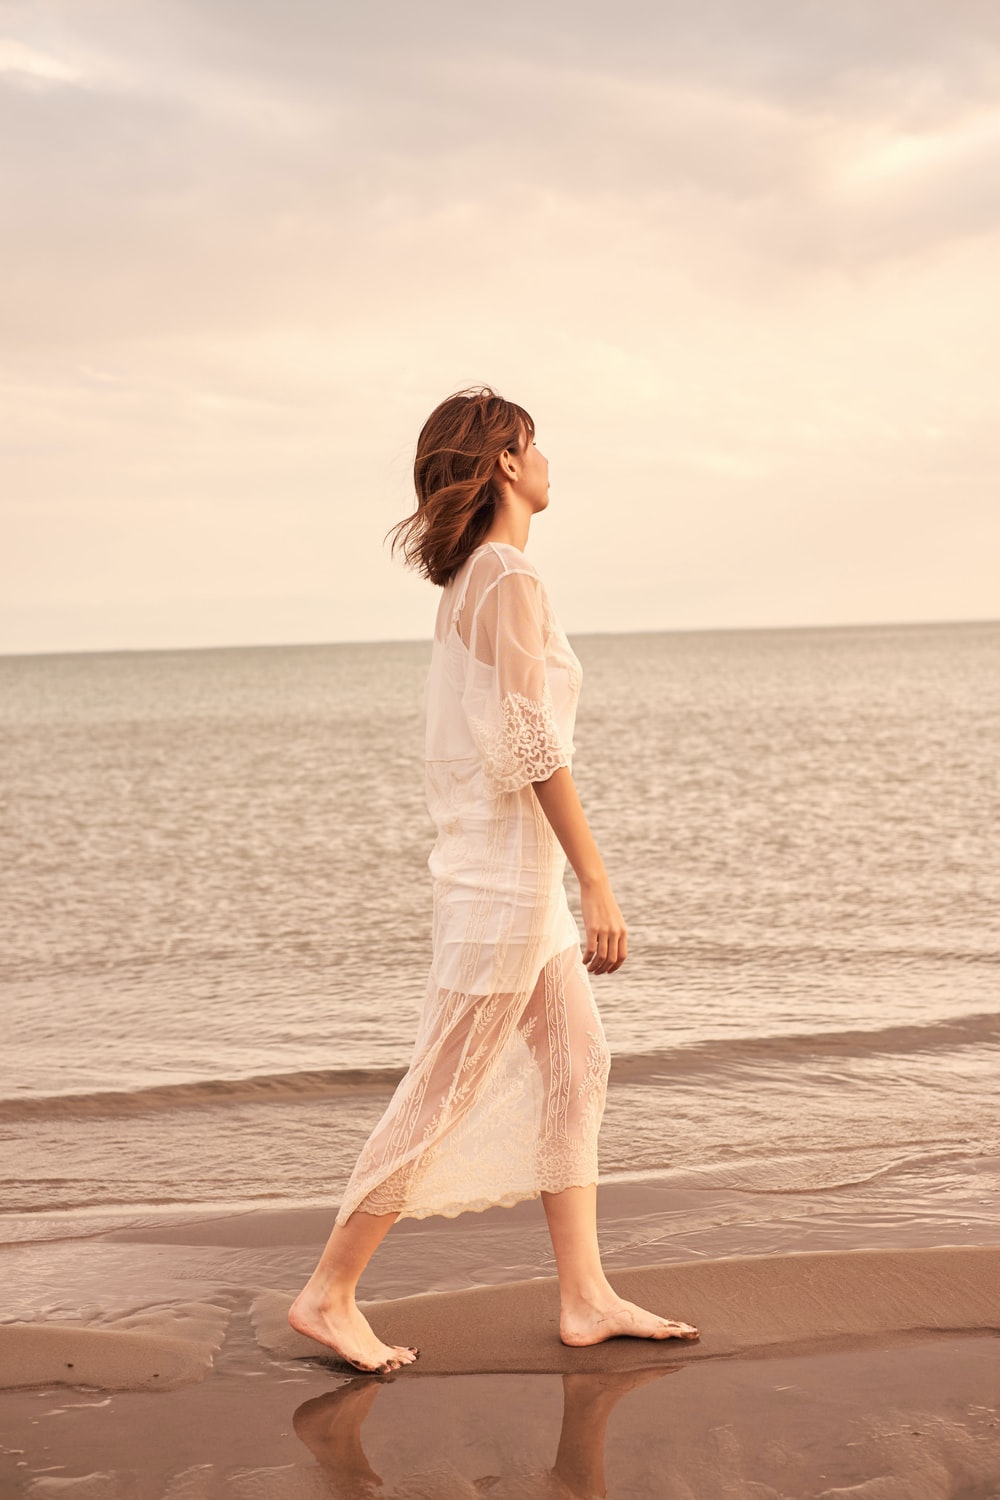 woman in white dress walking on beach during daytime